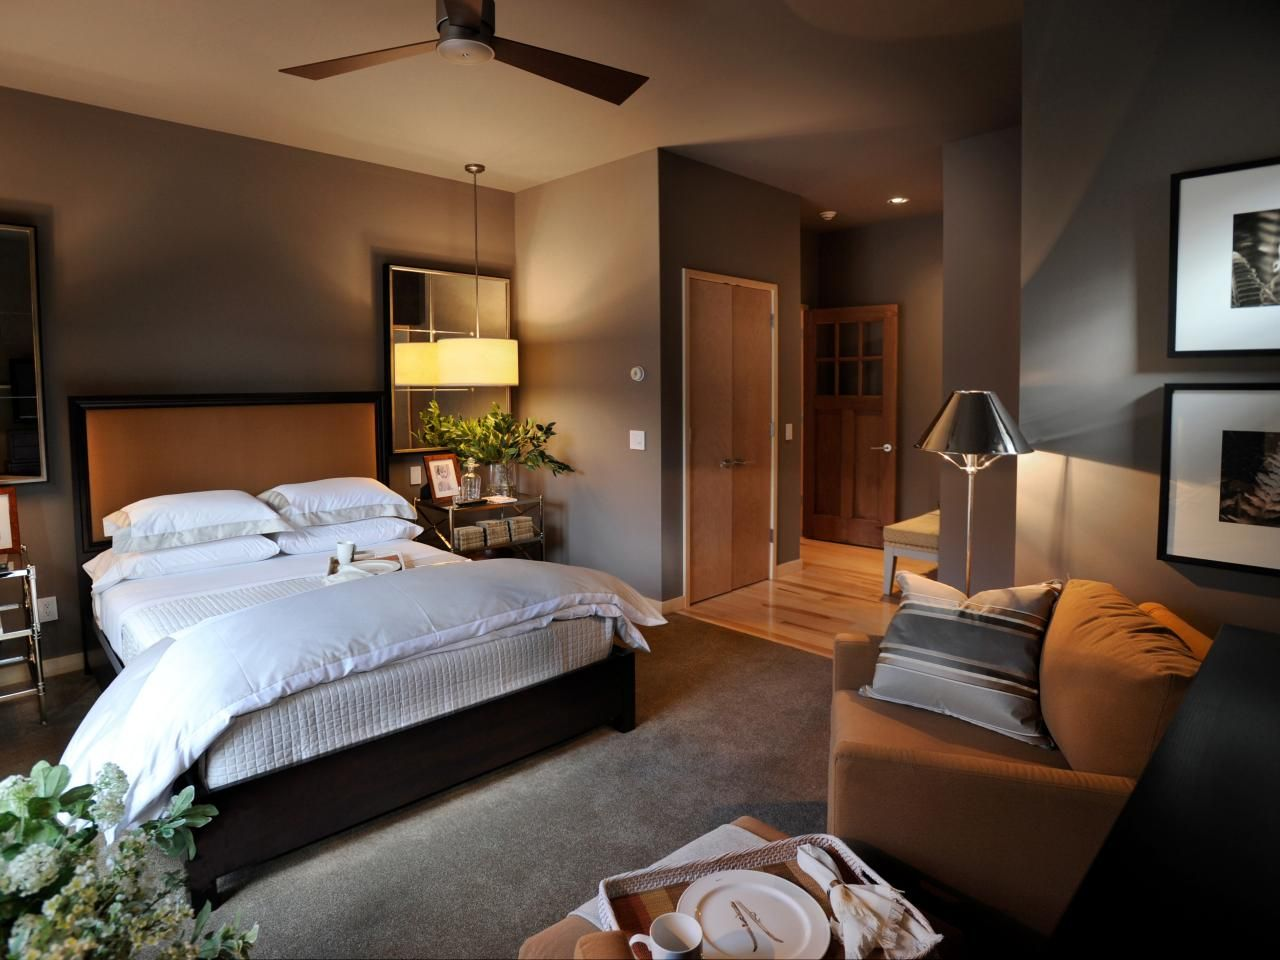 Hgtv Basement Bedroom Ideas. Wonderful Bedroom Hgtv Dream Home 2011 Guest  Bedroom Pictures And Video